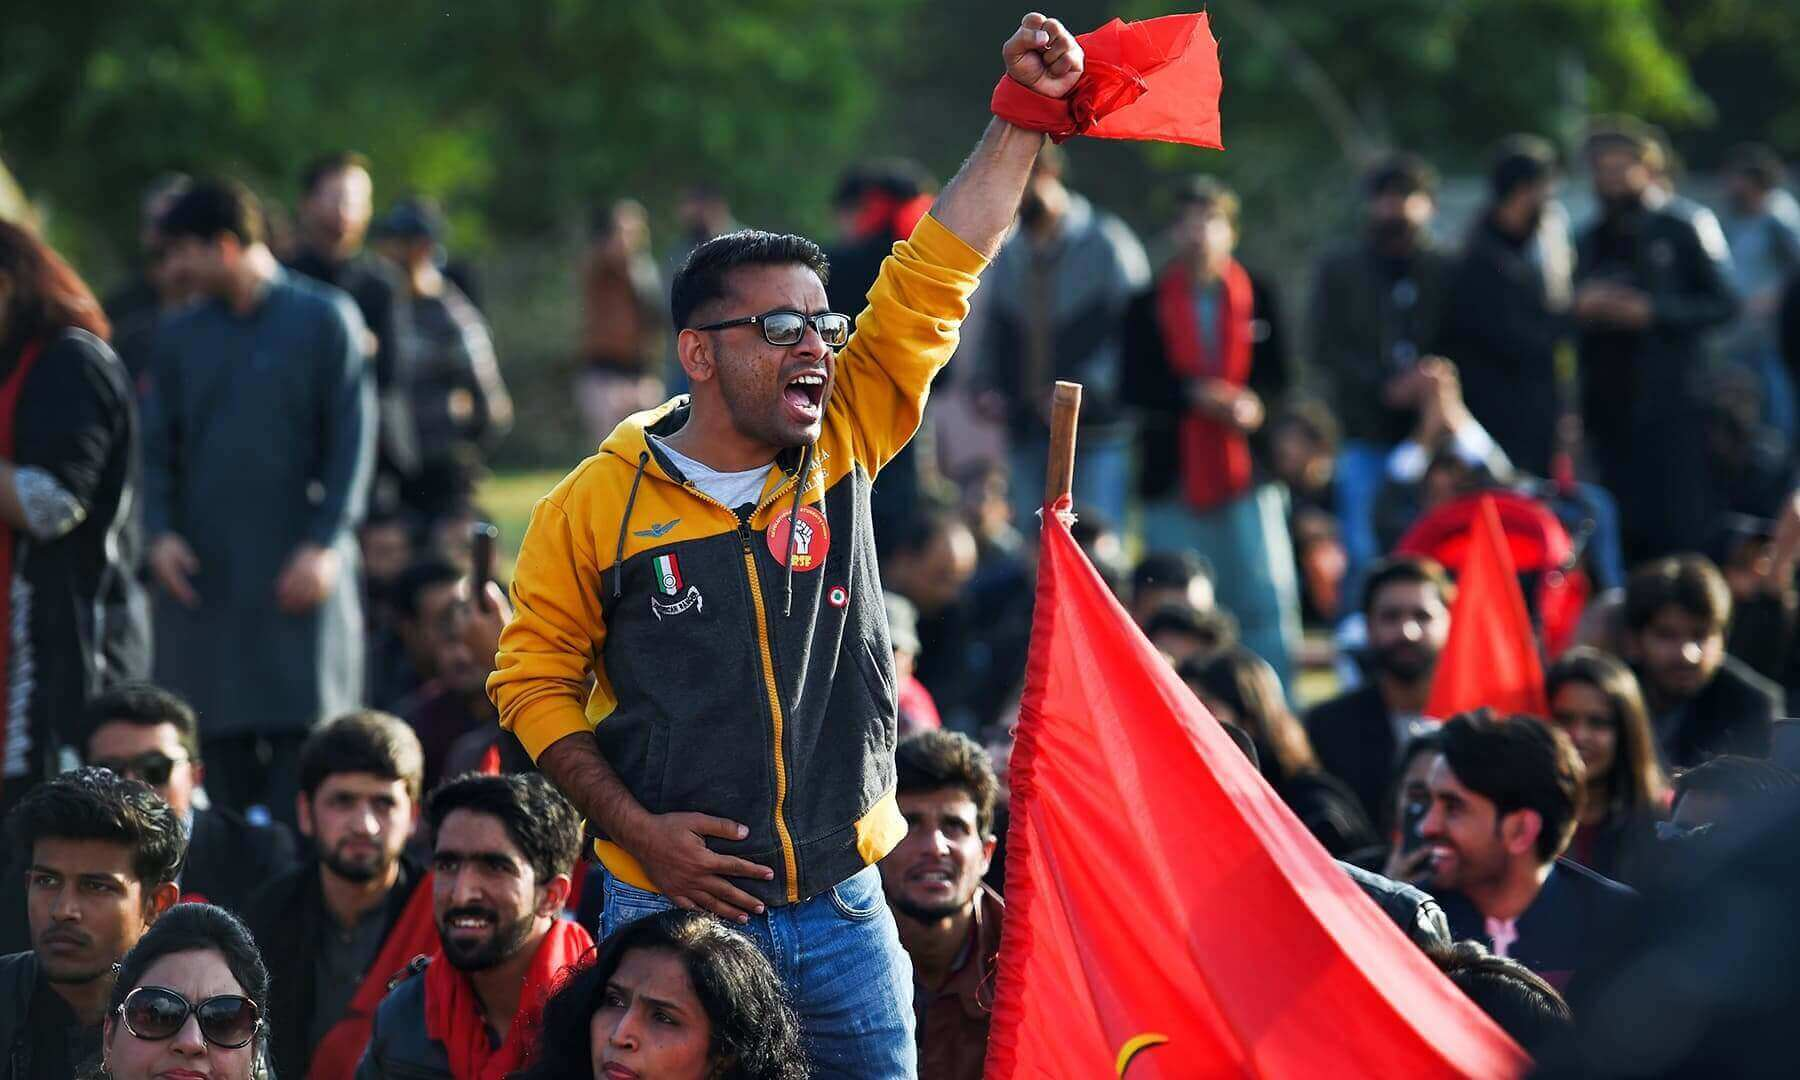 Students demand right to form unions, fee reduction